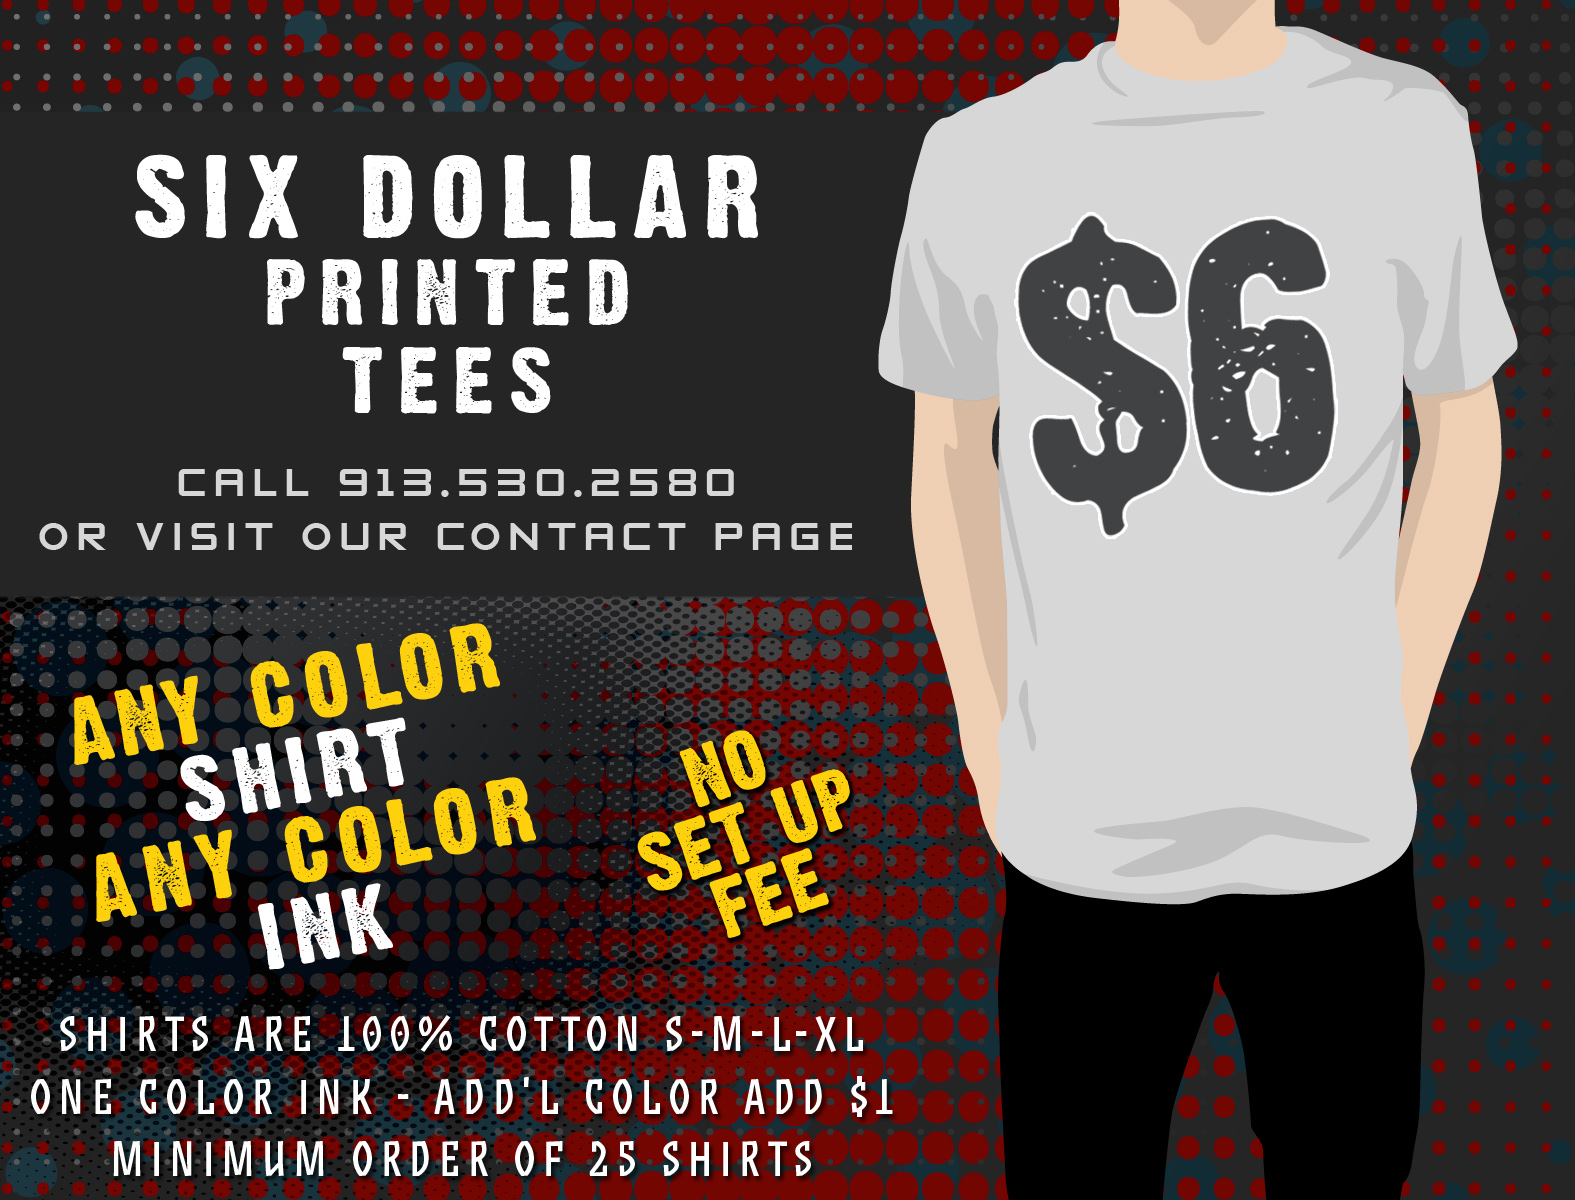 sites like 6 dollar tees